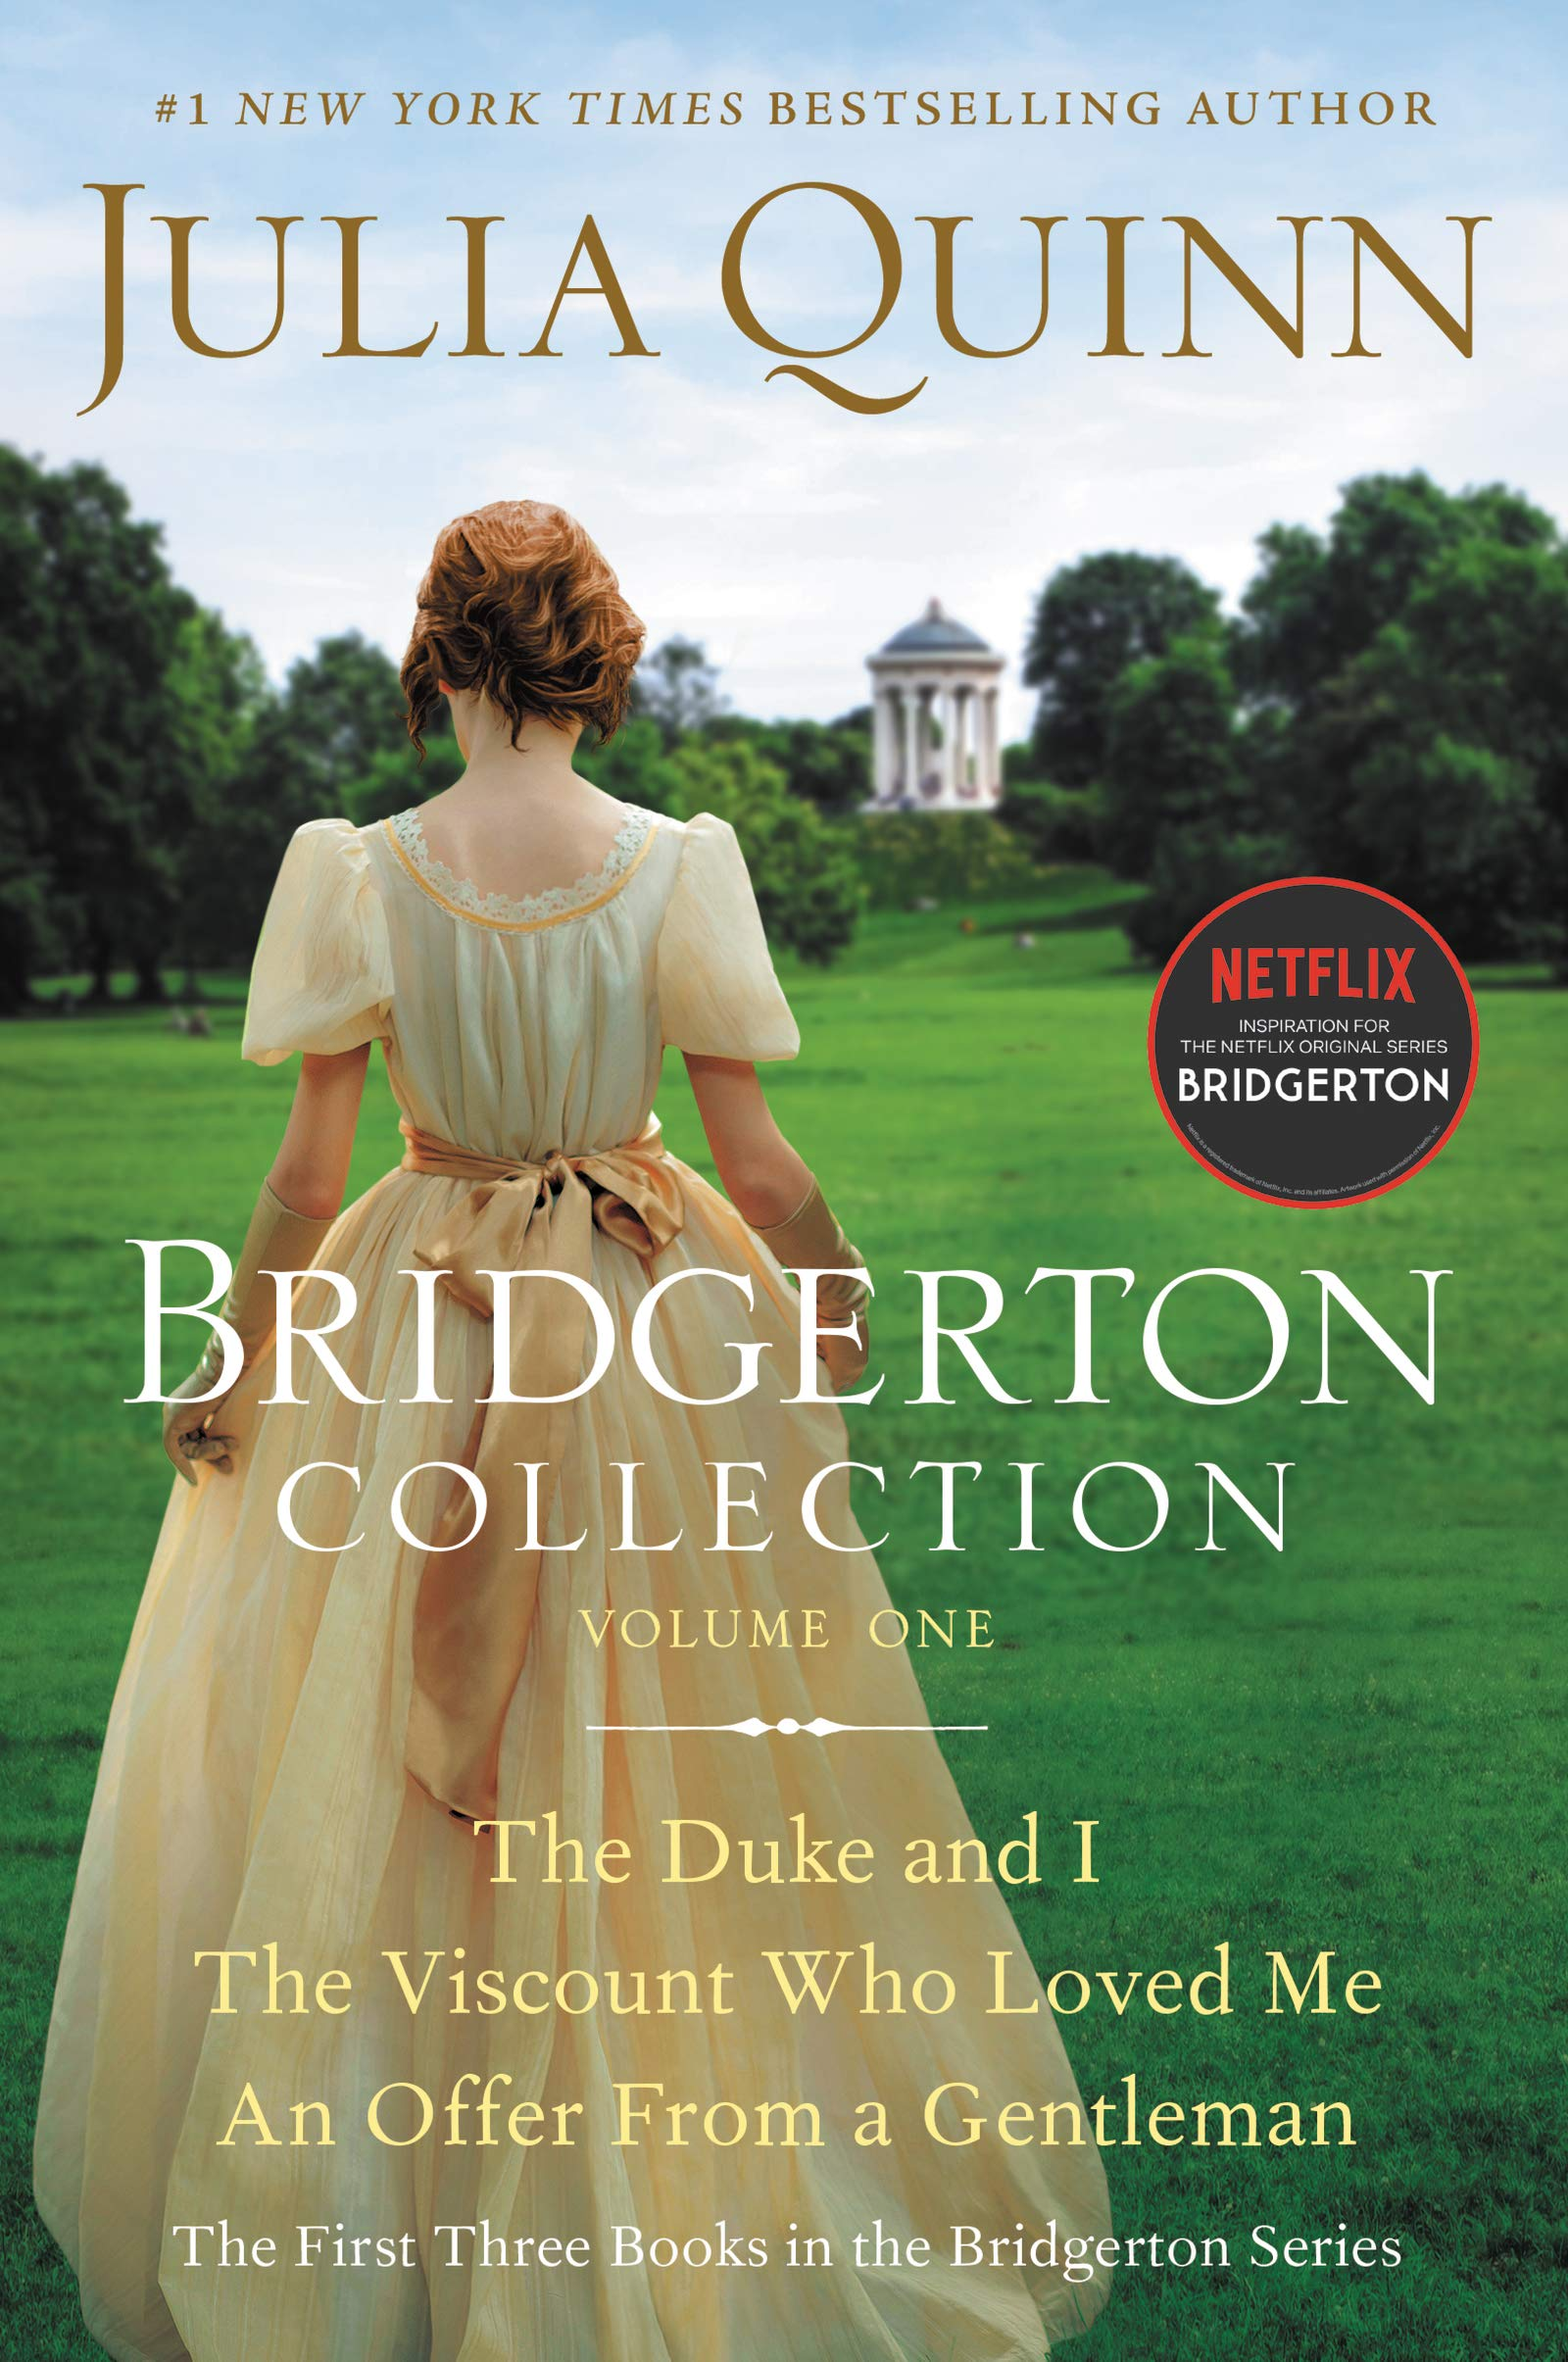 Cover image of Bridgerton Collection Volume 1: The First Three Books in the Bridgerton Series by Julia Quinn